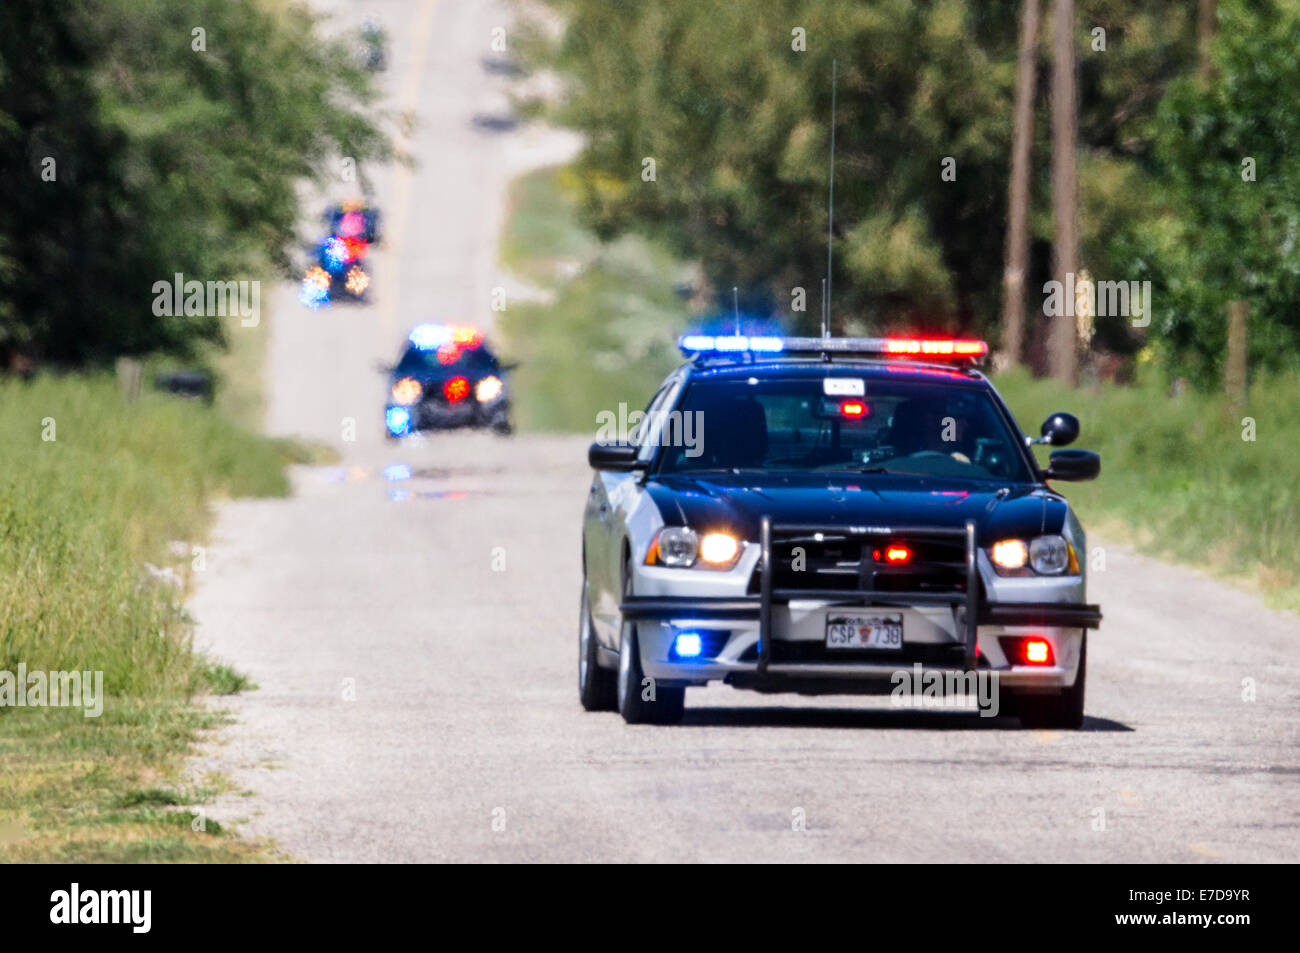 Colorado State Police cars & motorcycles, USA Pro Challenge bike race, Stage 3, central Colorado, USA Stock Photo